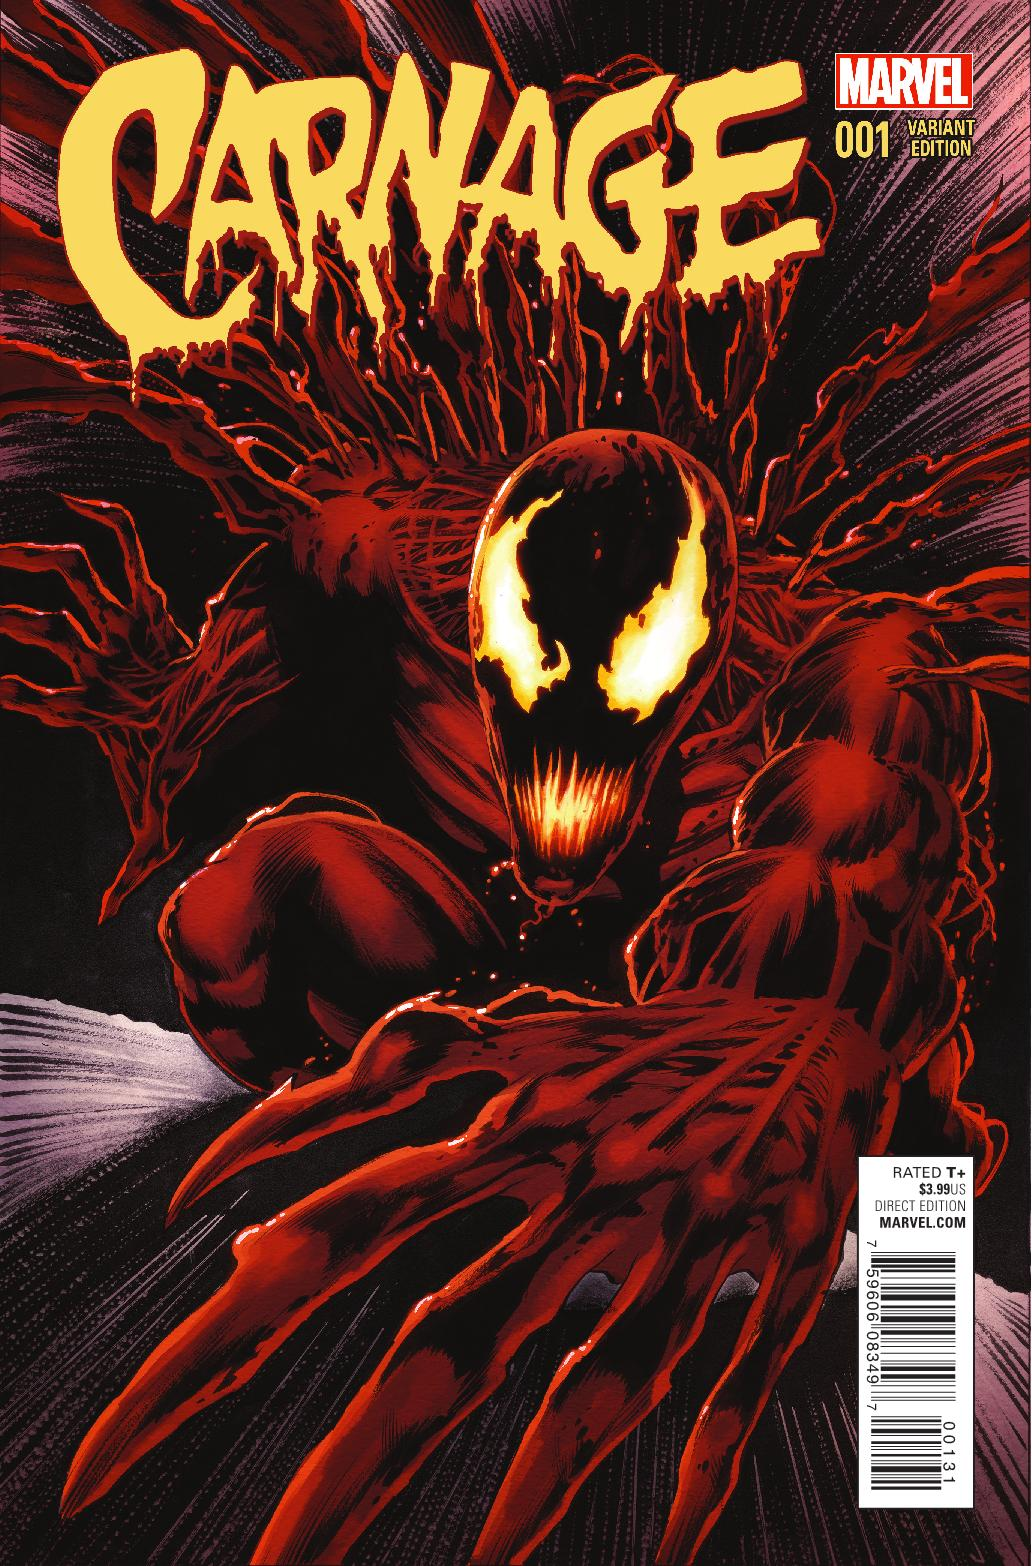 Preview carnage 1 all - Marvel spiderman comics pdf ...